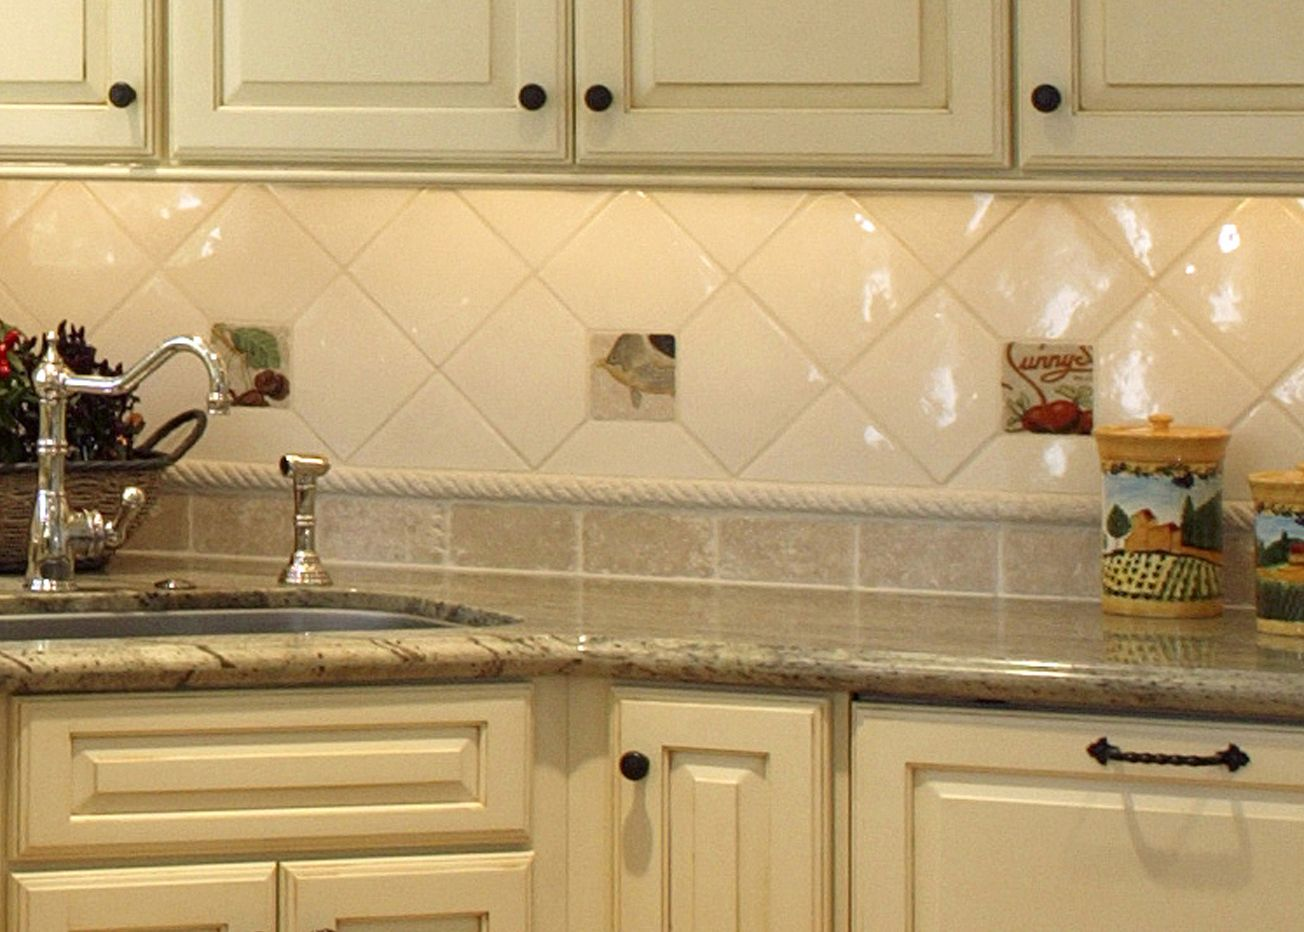 kitchen tile design ideas tile design kitchen alluring kitchen kitchen backsplash tile design ideas - Kitchen Tile Design Ideas